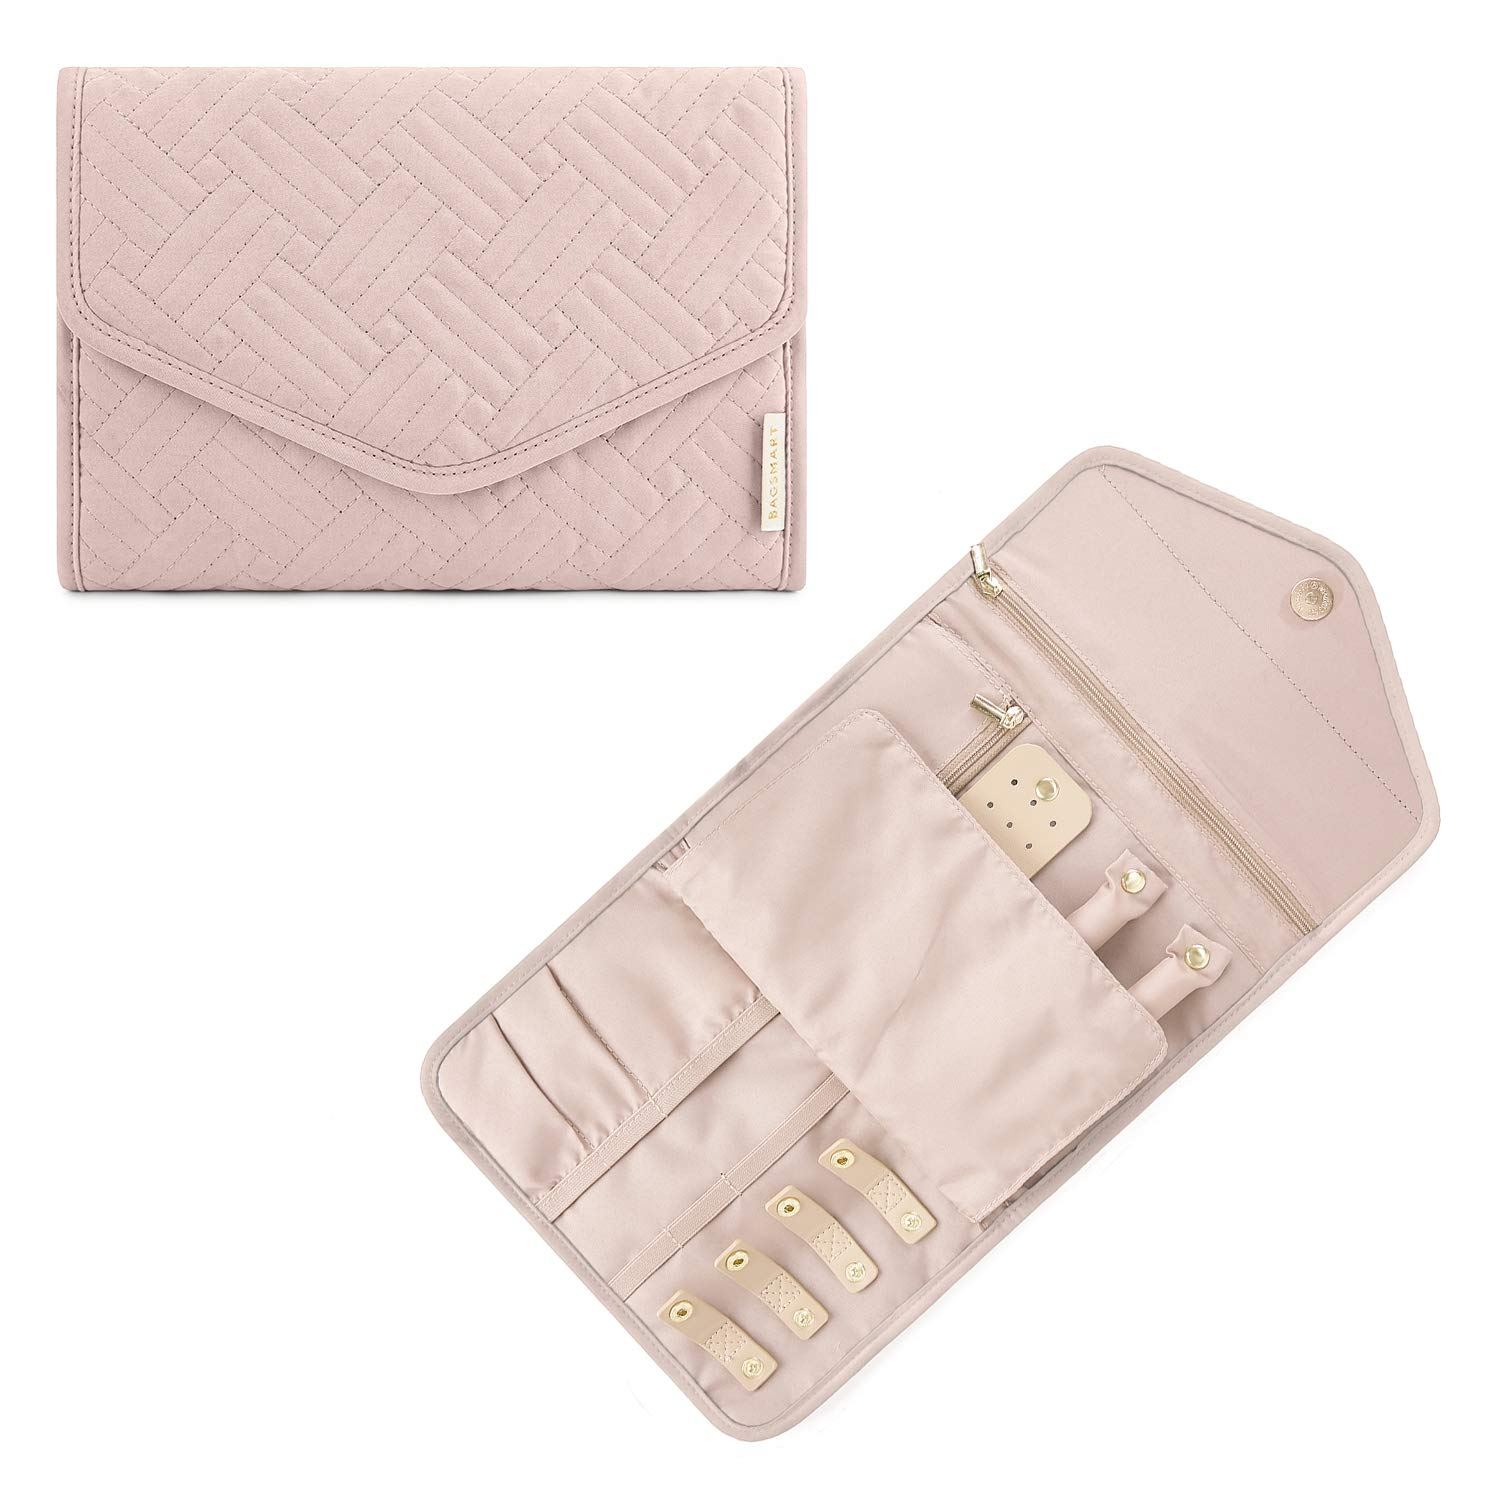 BAGSMART Travel Jewellery Organiser Roll Foldable Jewelry Case for Journey-Rings, Necklaces, Bracelets, Earrings, Soft Pink